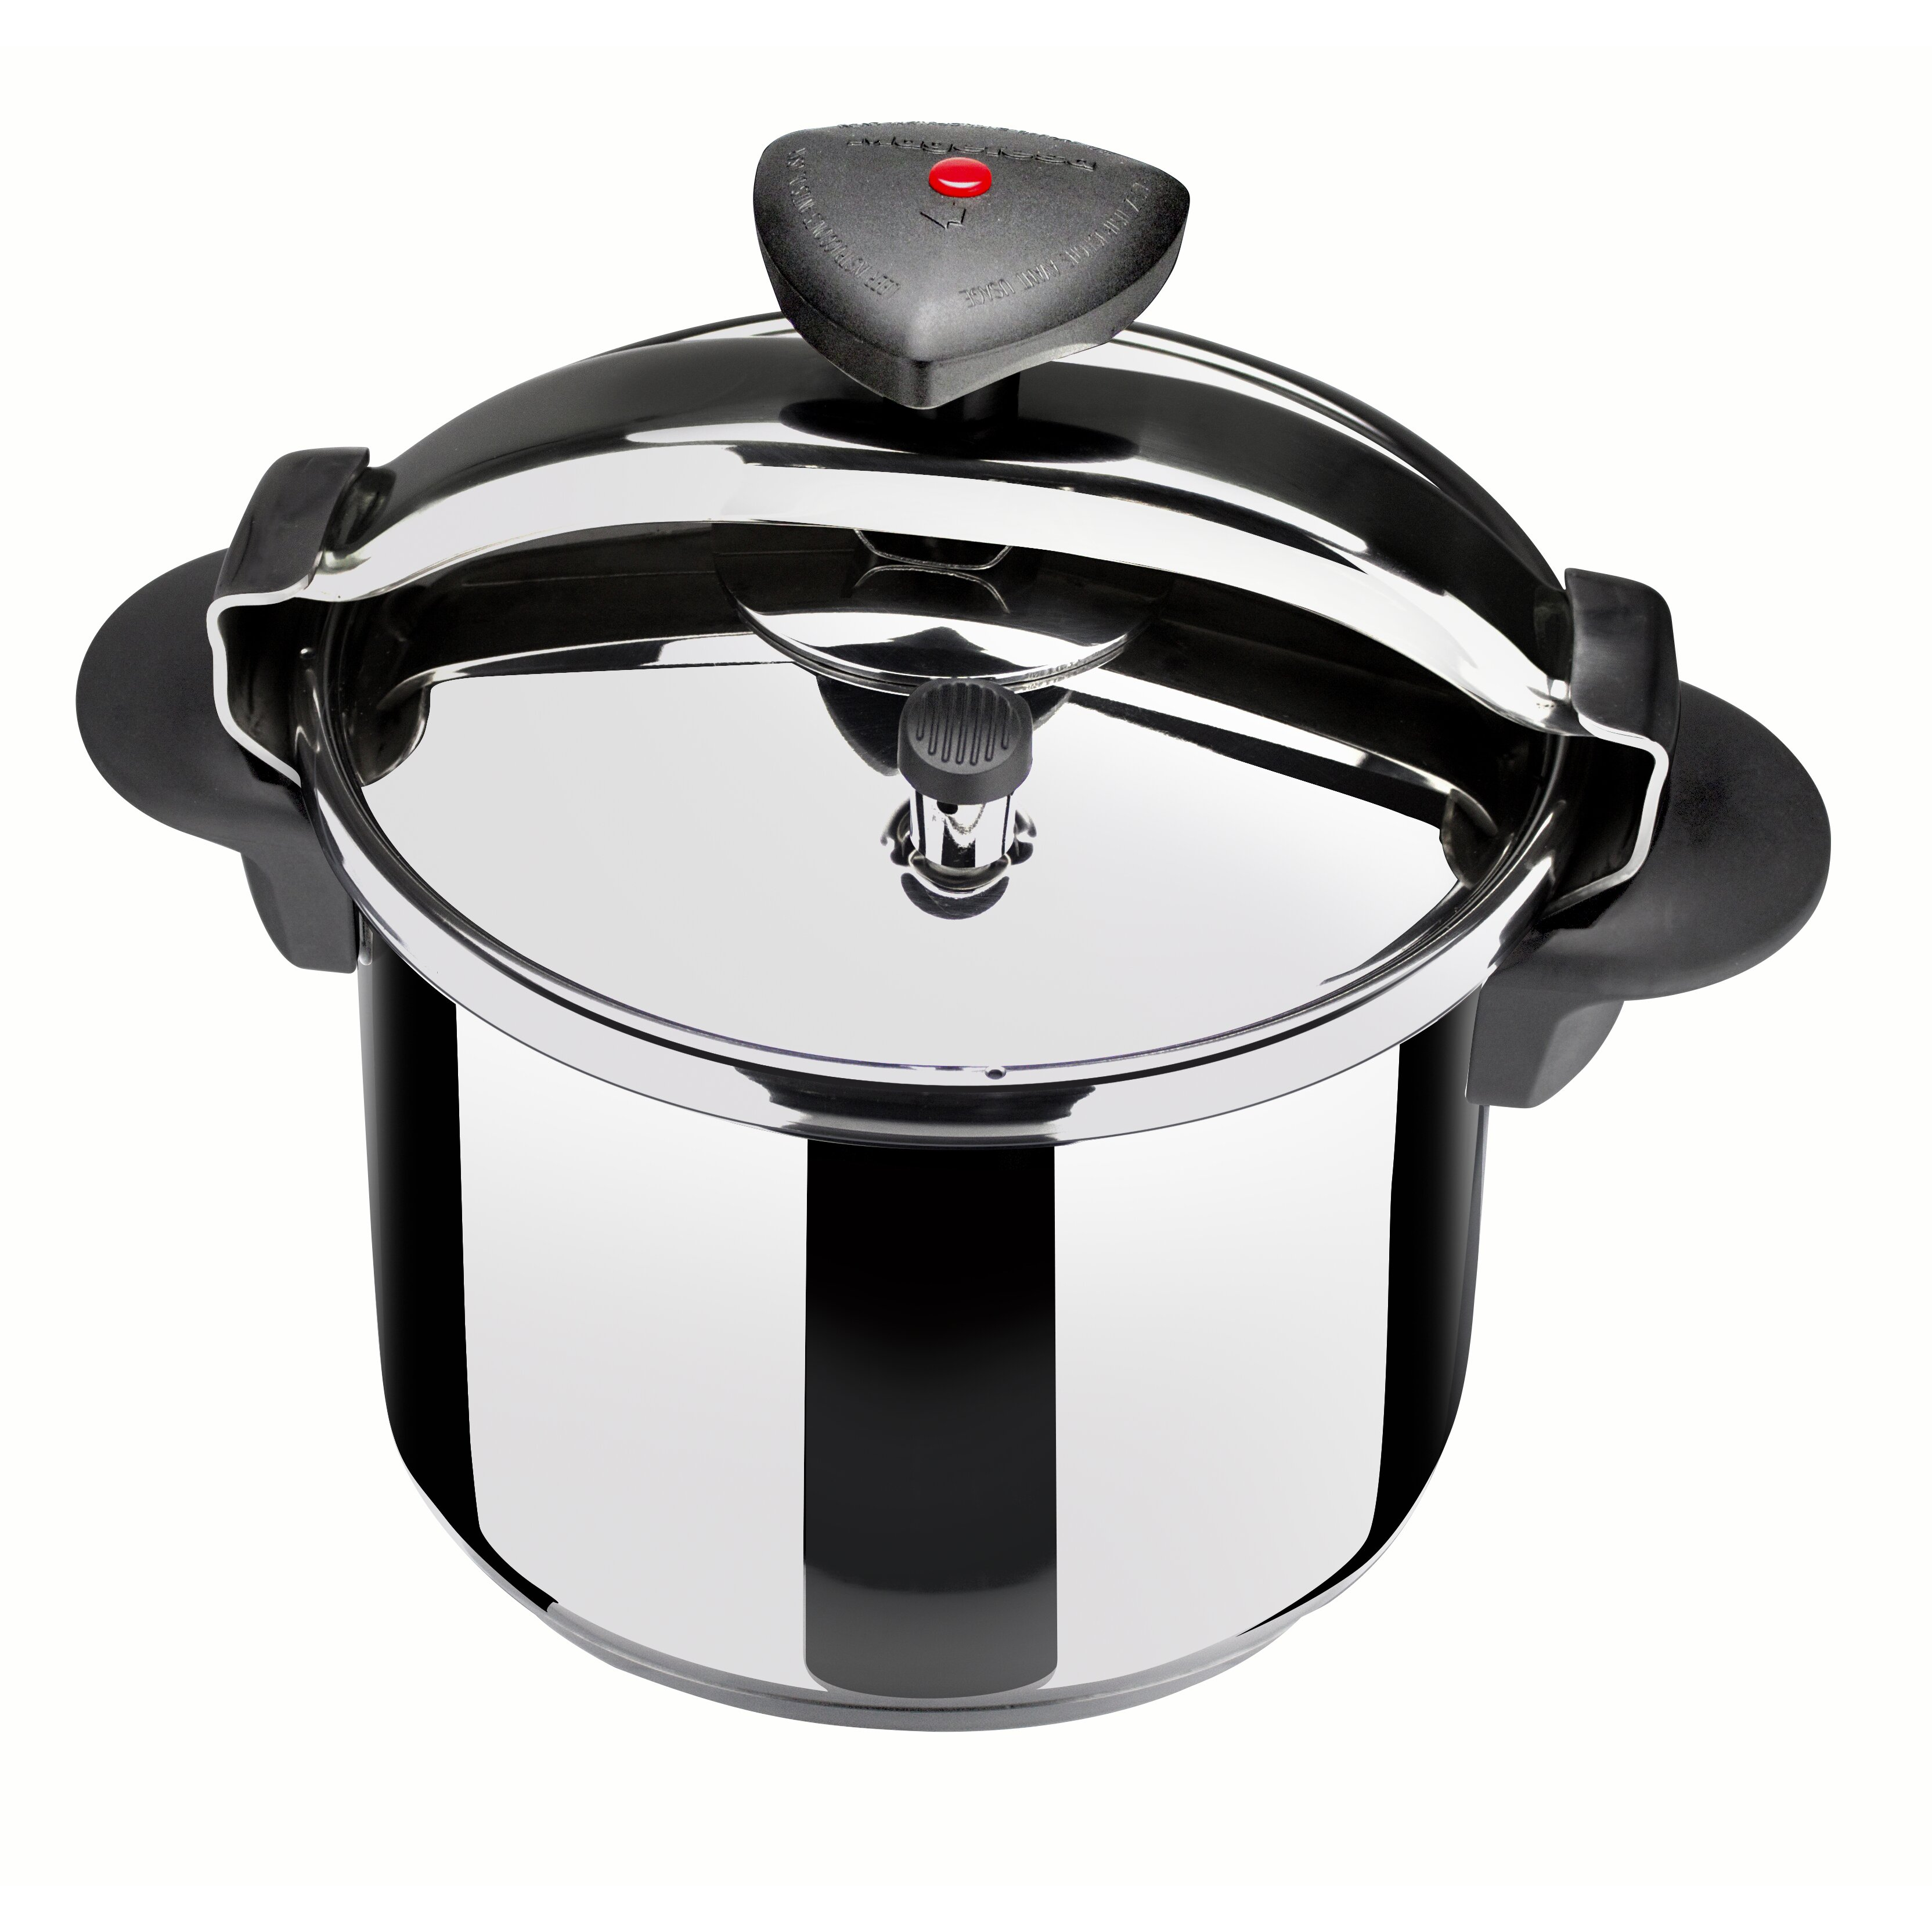 magefesa star r stainless steel fast pressure cooker reviews wayfair. Black Bedroom Furniture Sets. Home Design Ideas